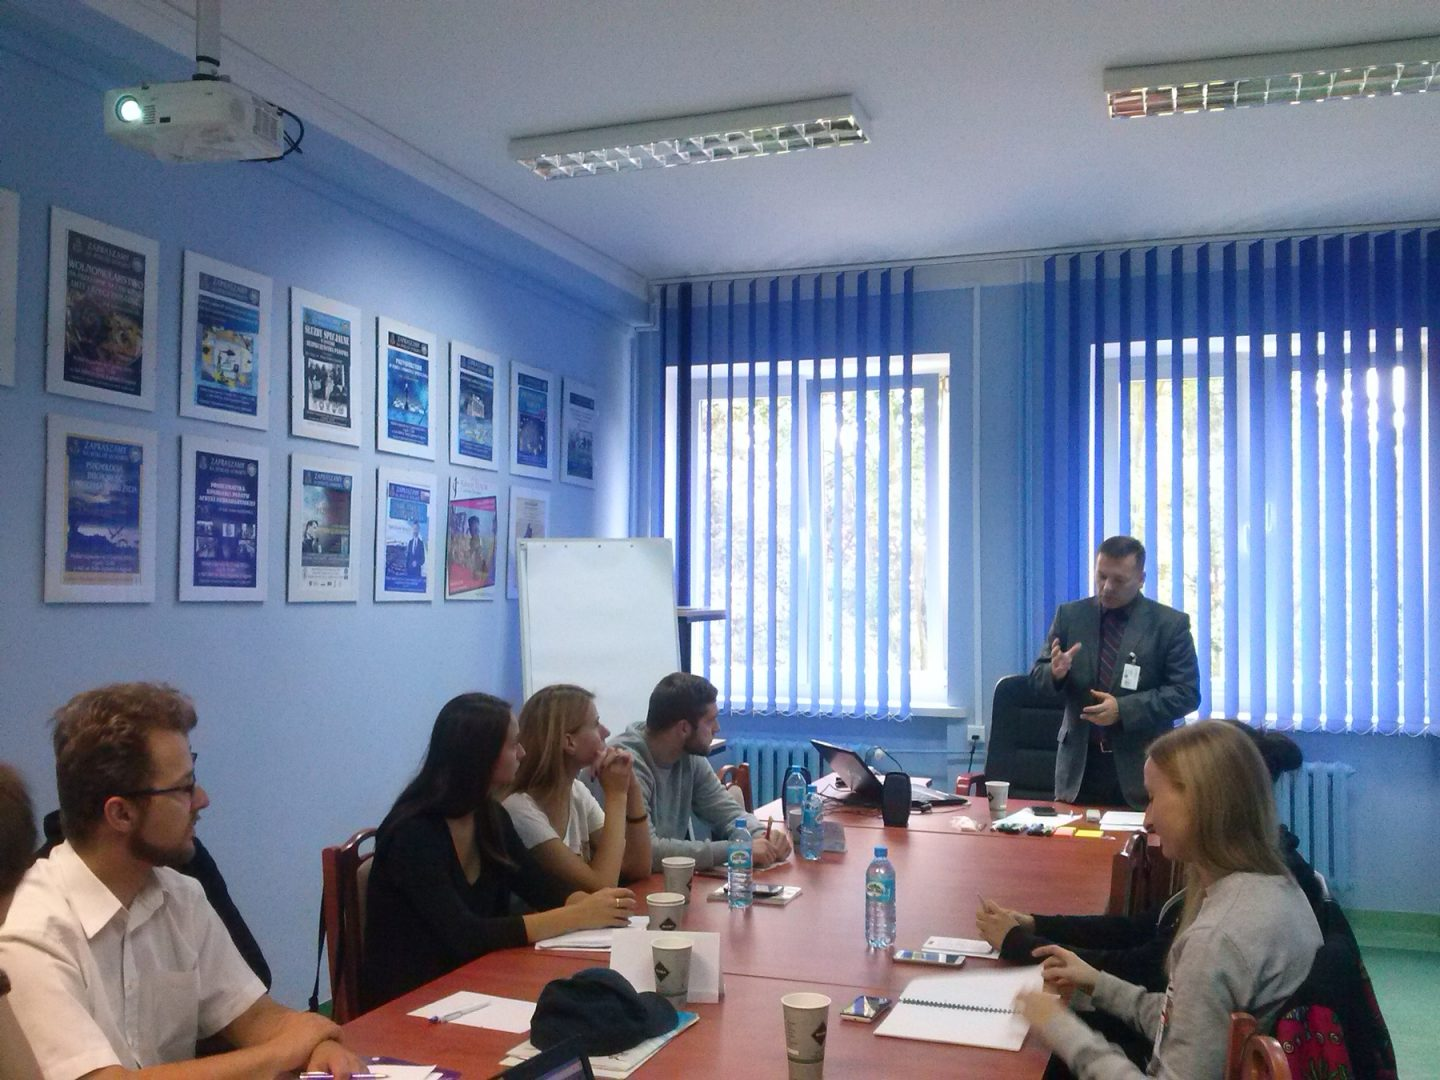 Conflict simulation workshops for students from the Polish Naval Academy in Gdynia